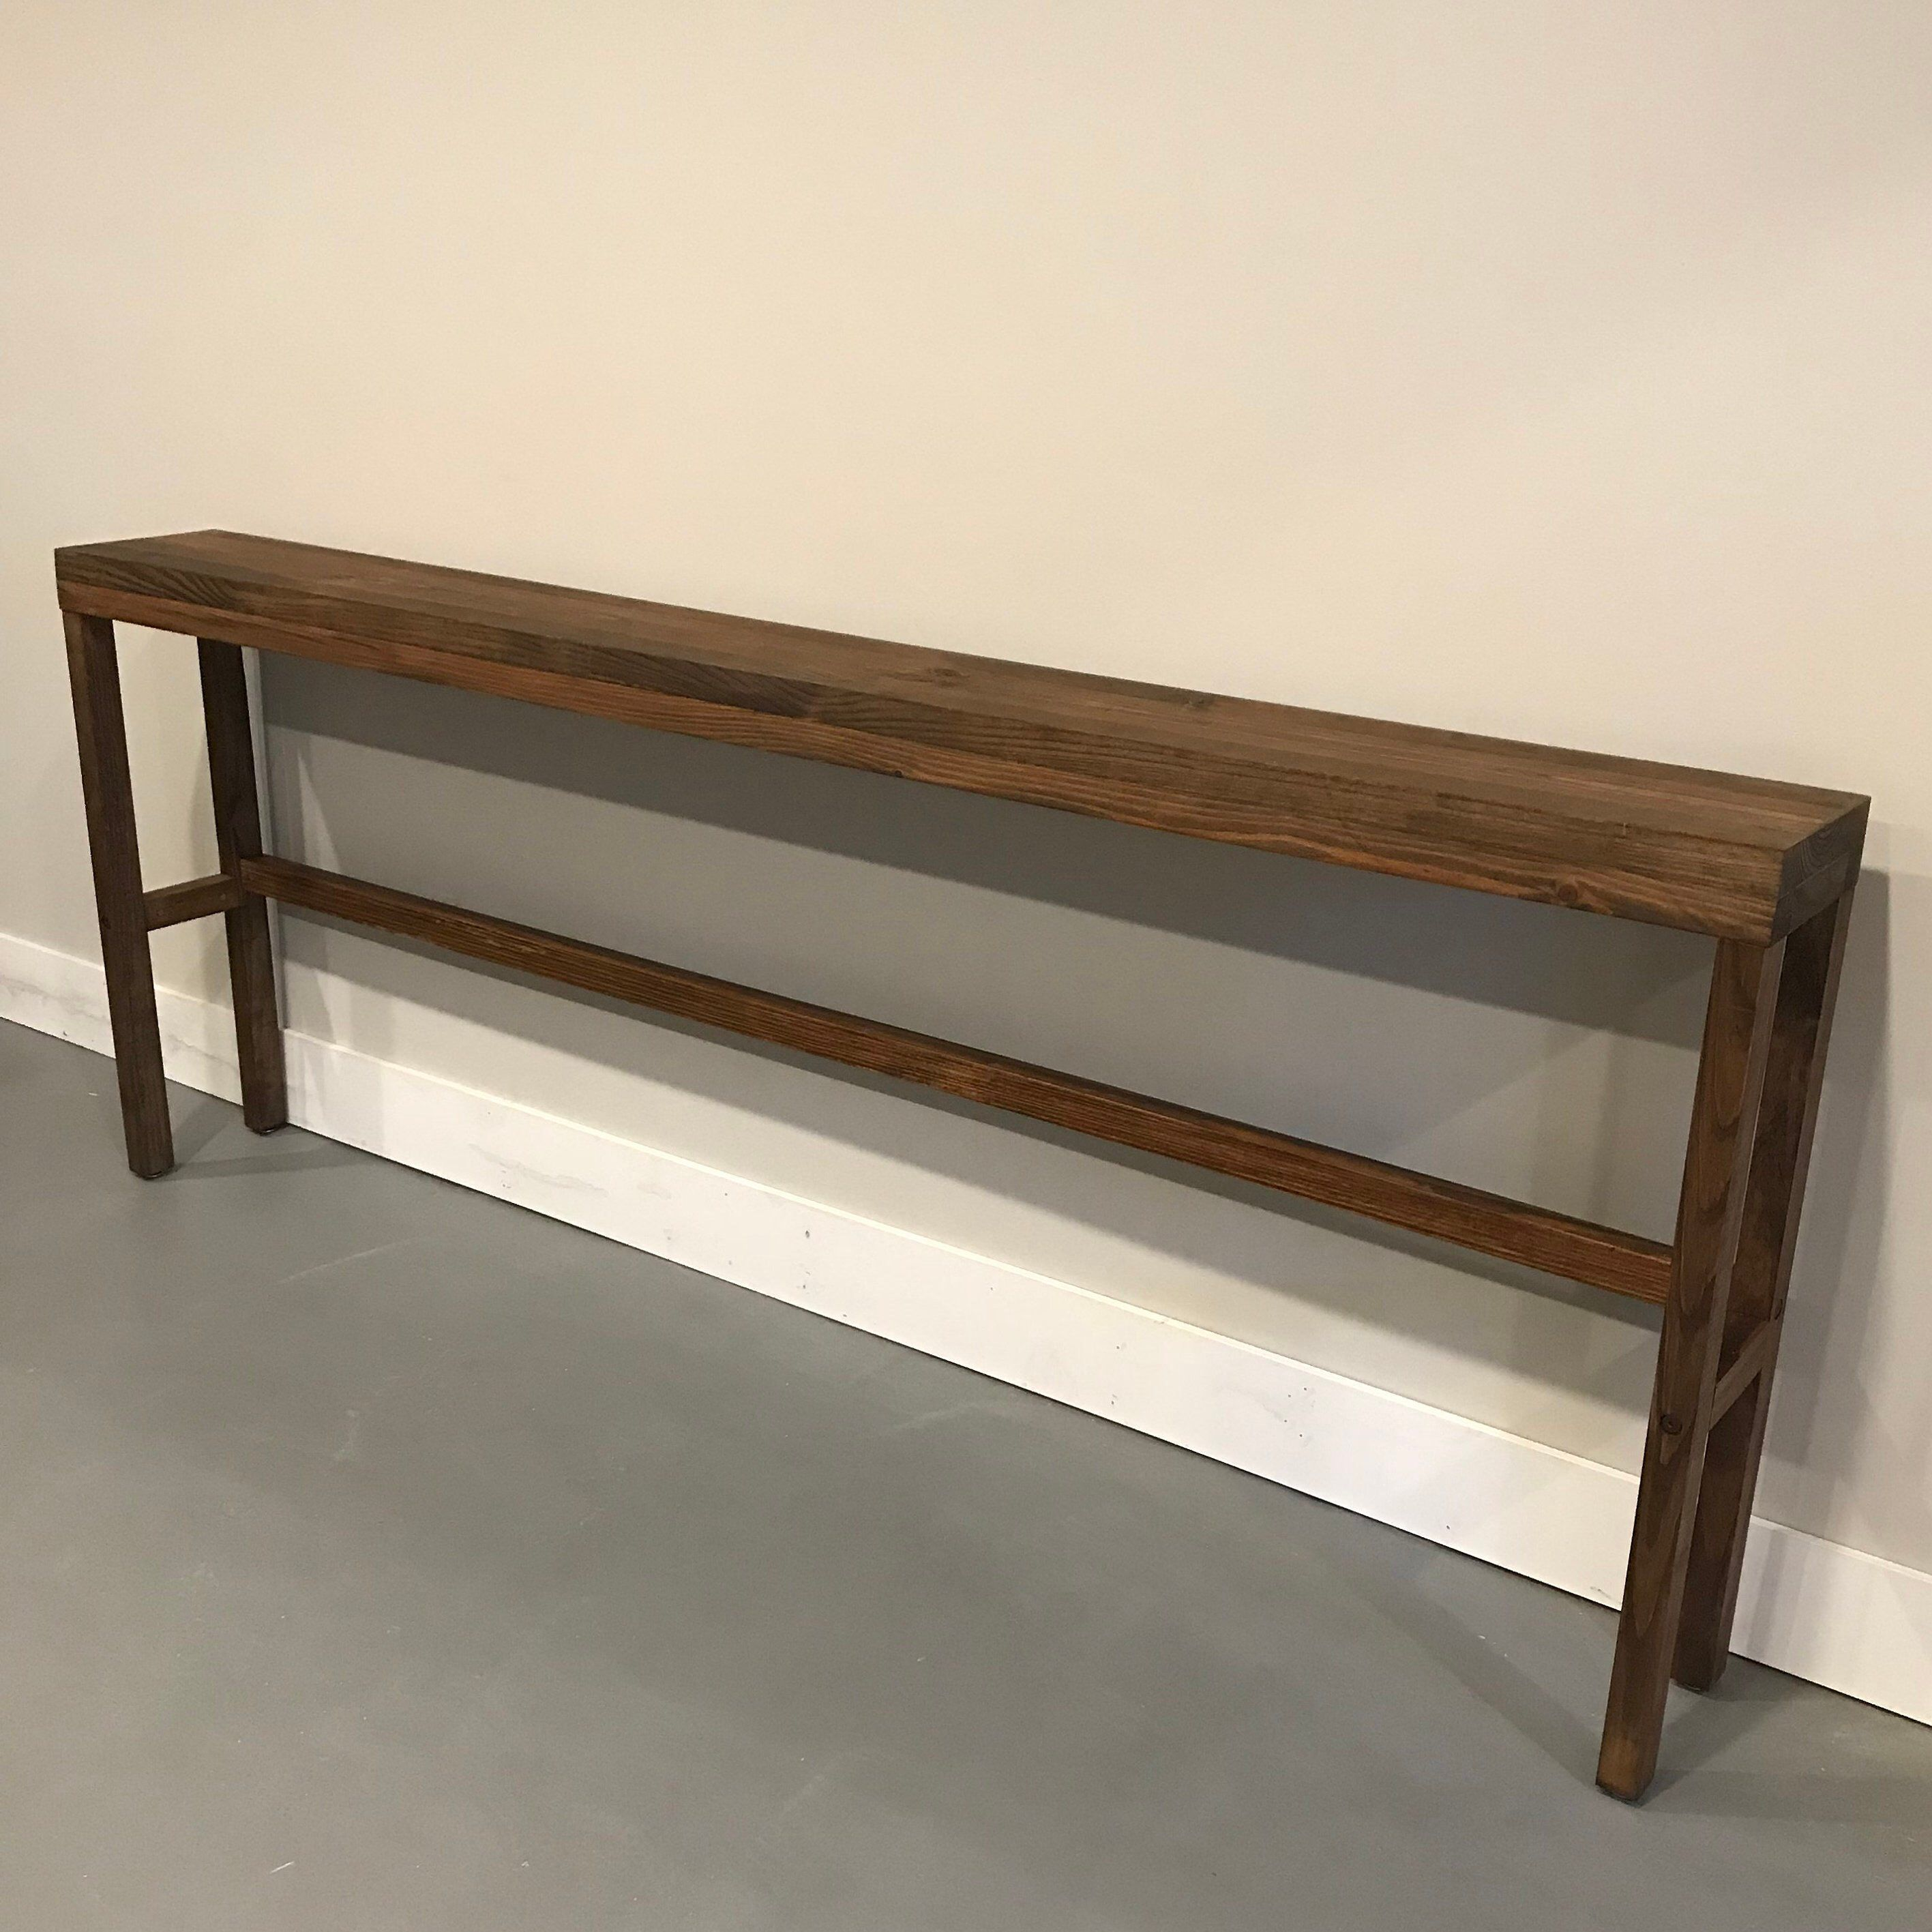 Long Console Table Narrow Console Table Skinny Console Table Sofa Table Behind Sofa Table Behind Table Behind Couch Long Sofa Table Behind Sofa Table